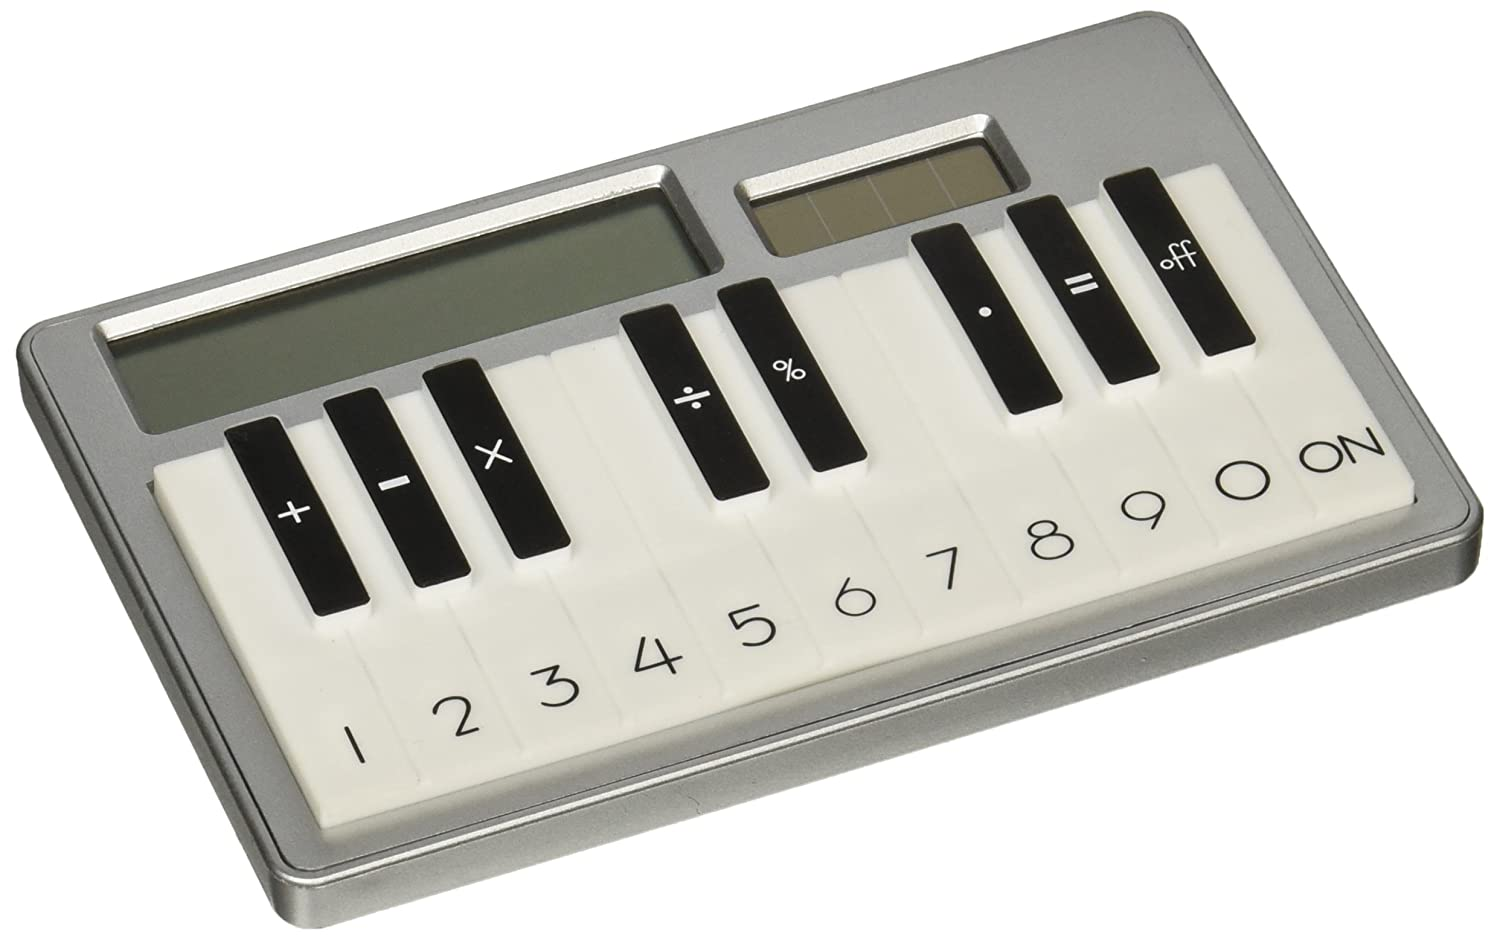 Made By Humans Piano Calculator (109) Made By Humans 2 Designs Inc